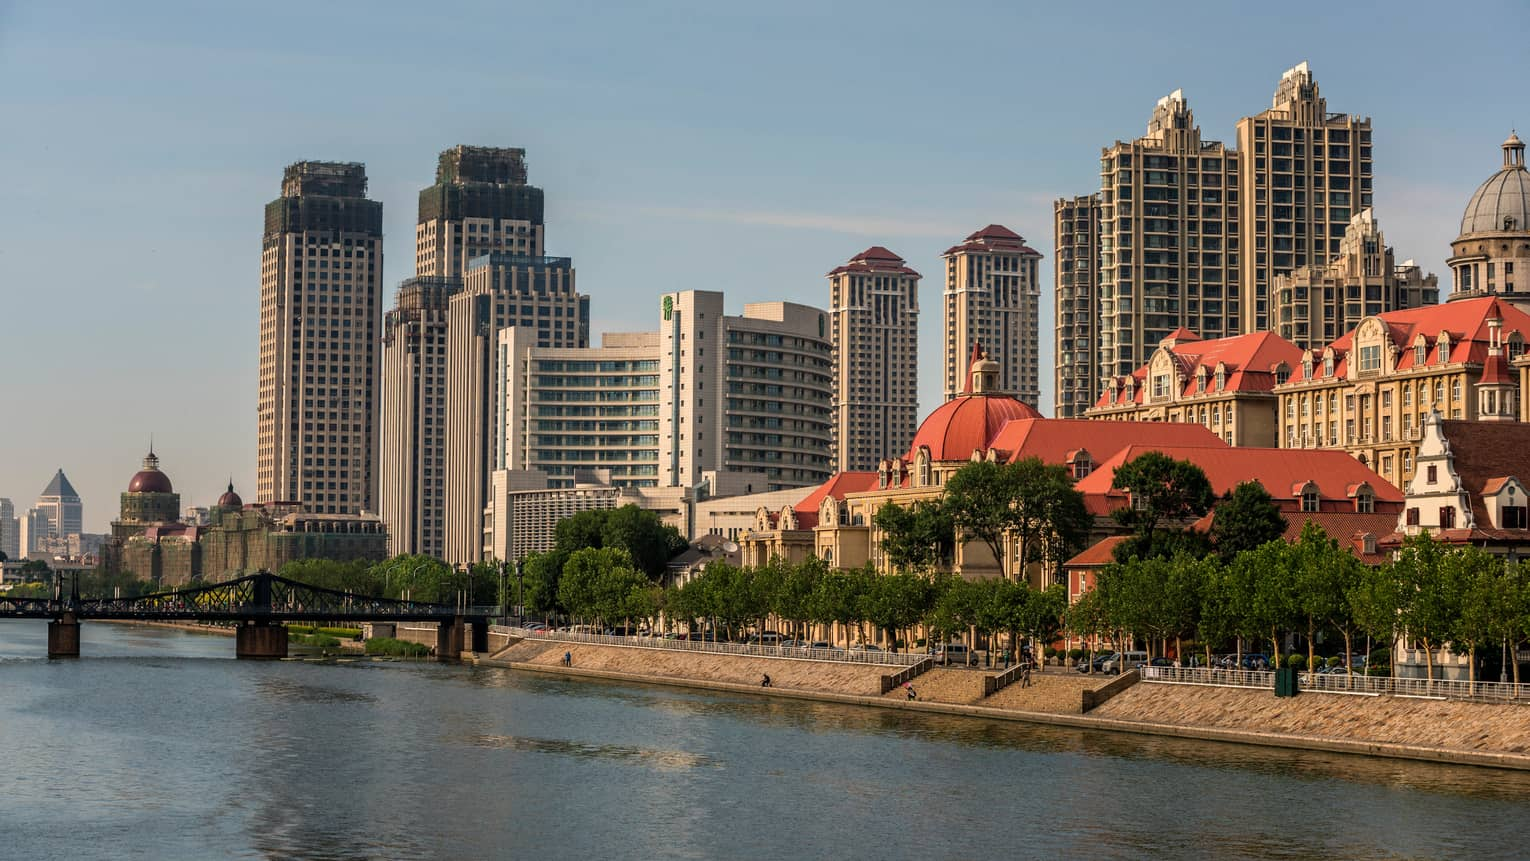 Walkway along banks of Hia River, bridge, Tianjin skyline